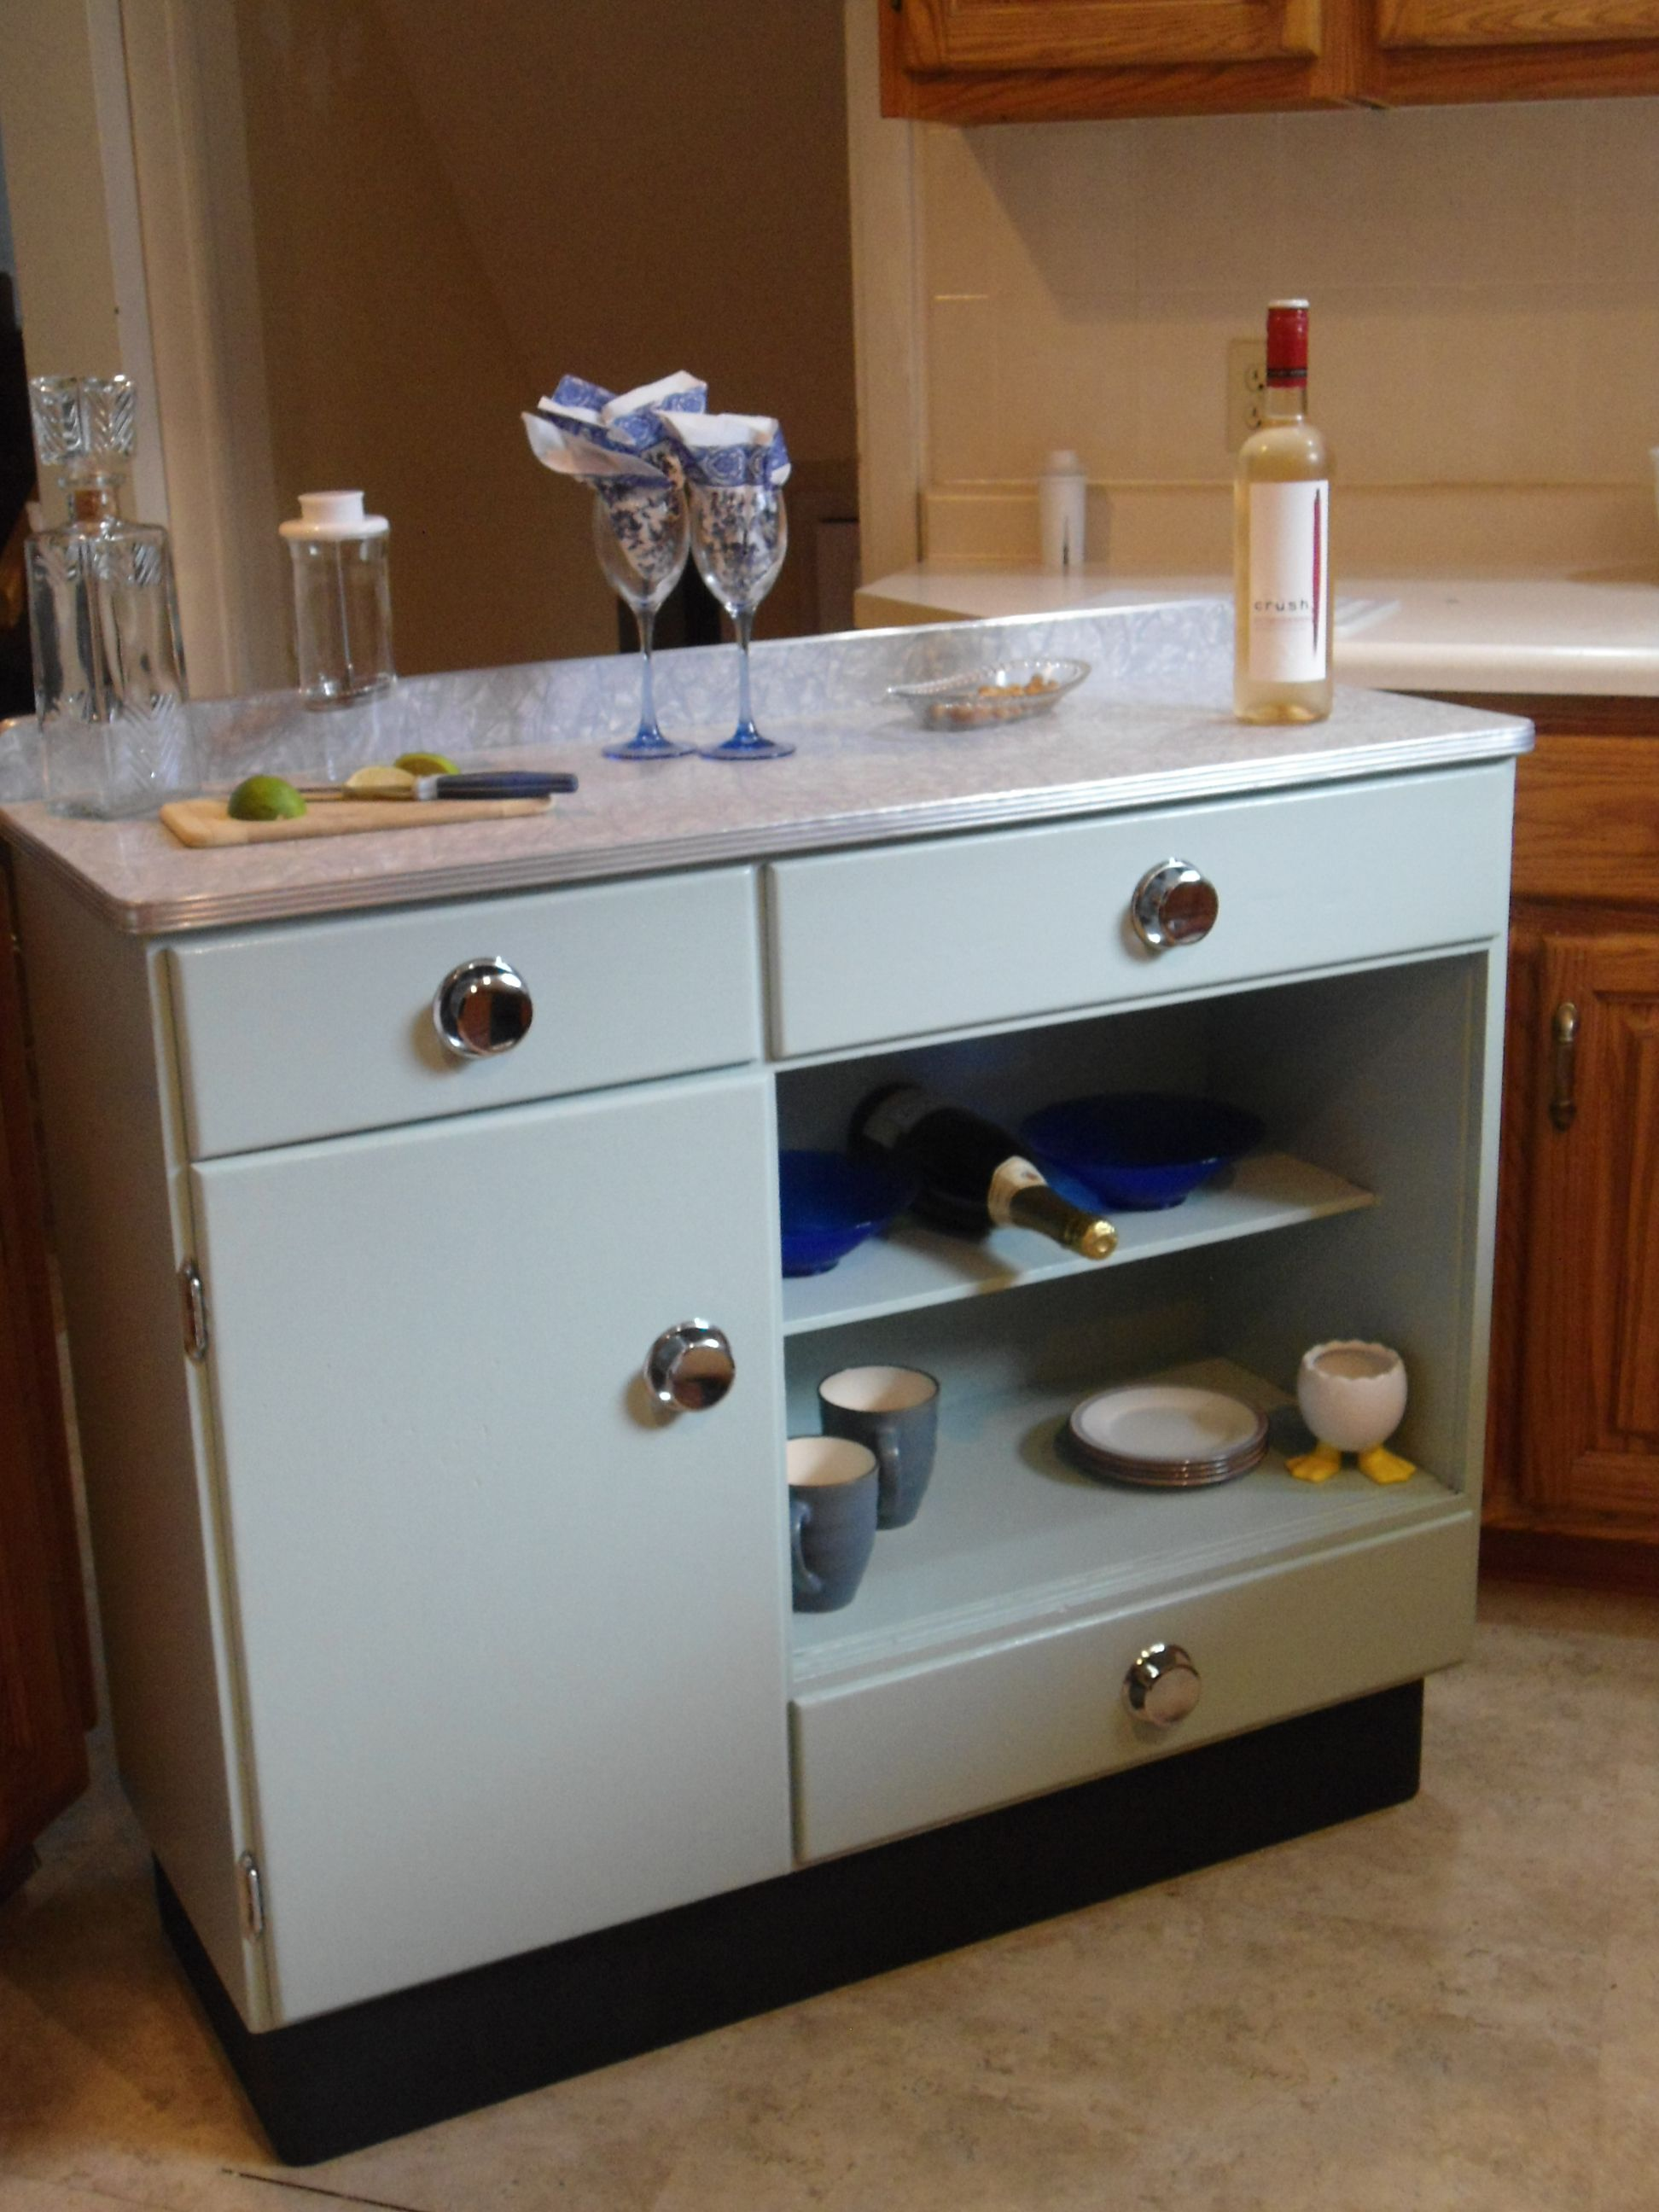 Vintage kitchen kitchen hutch from the 1960\'s given new life with ...